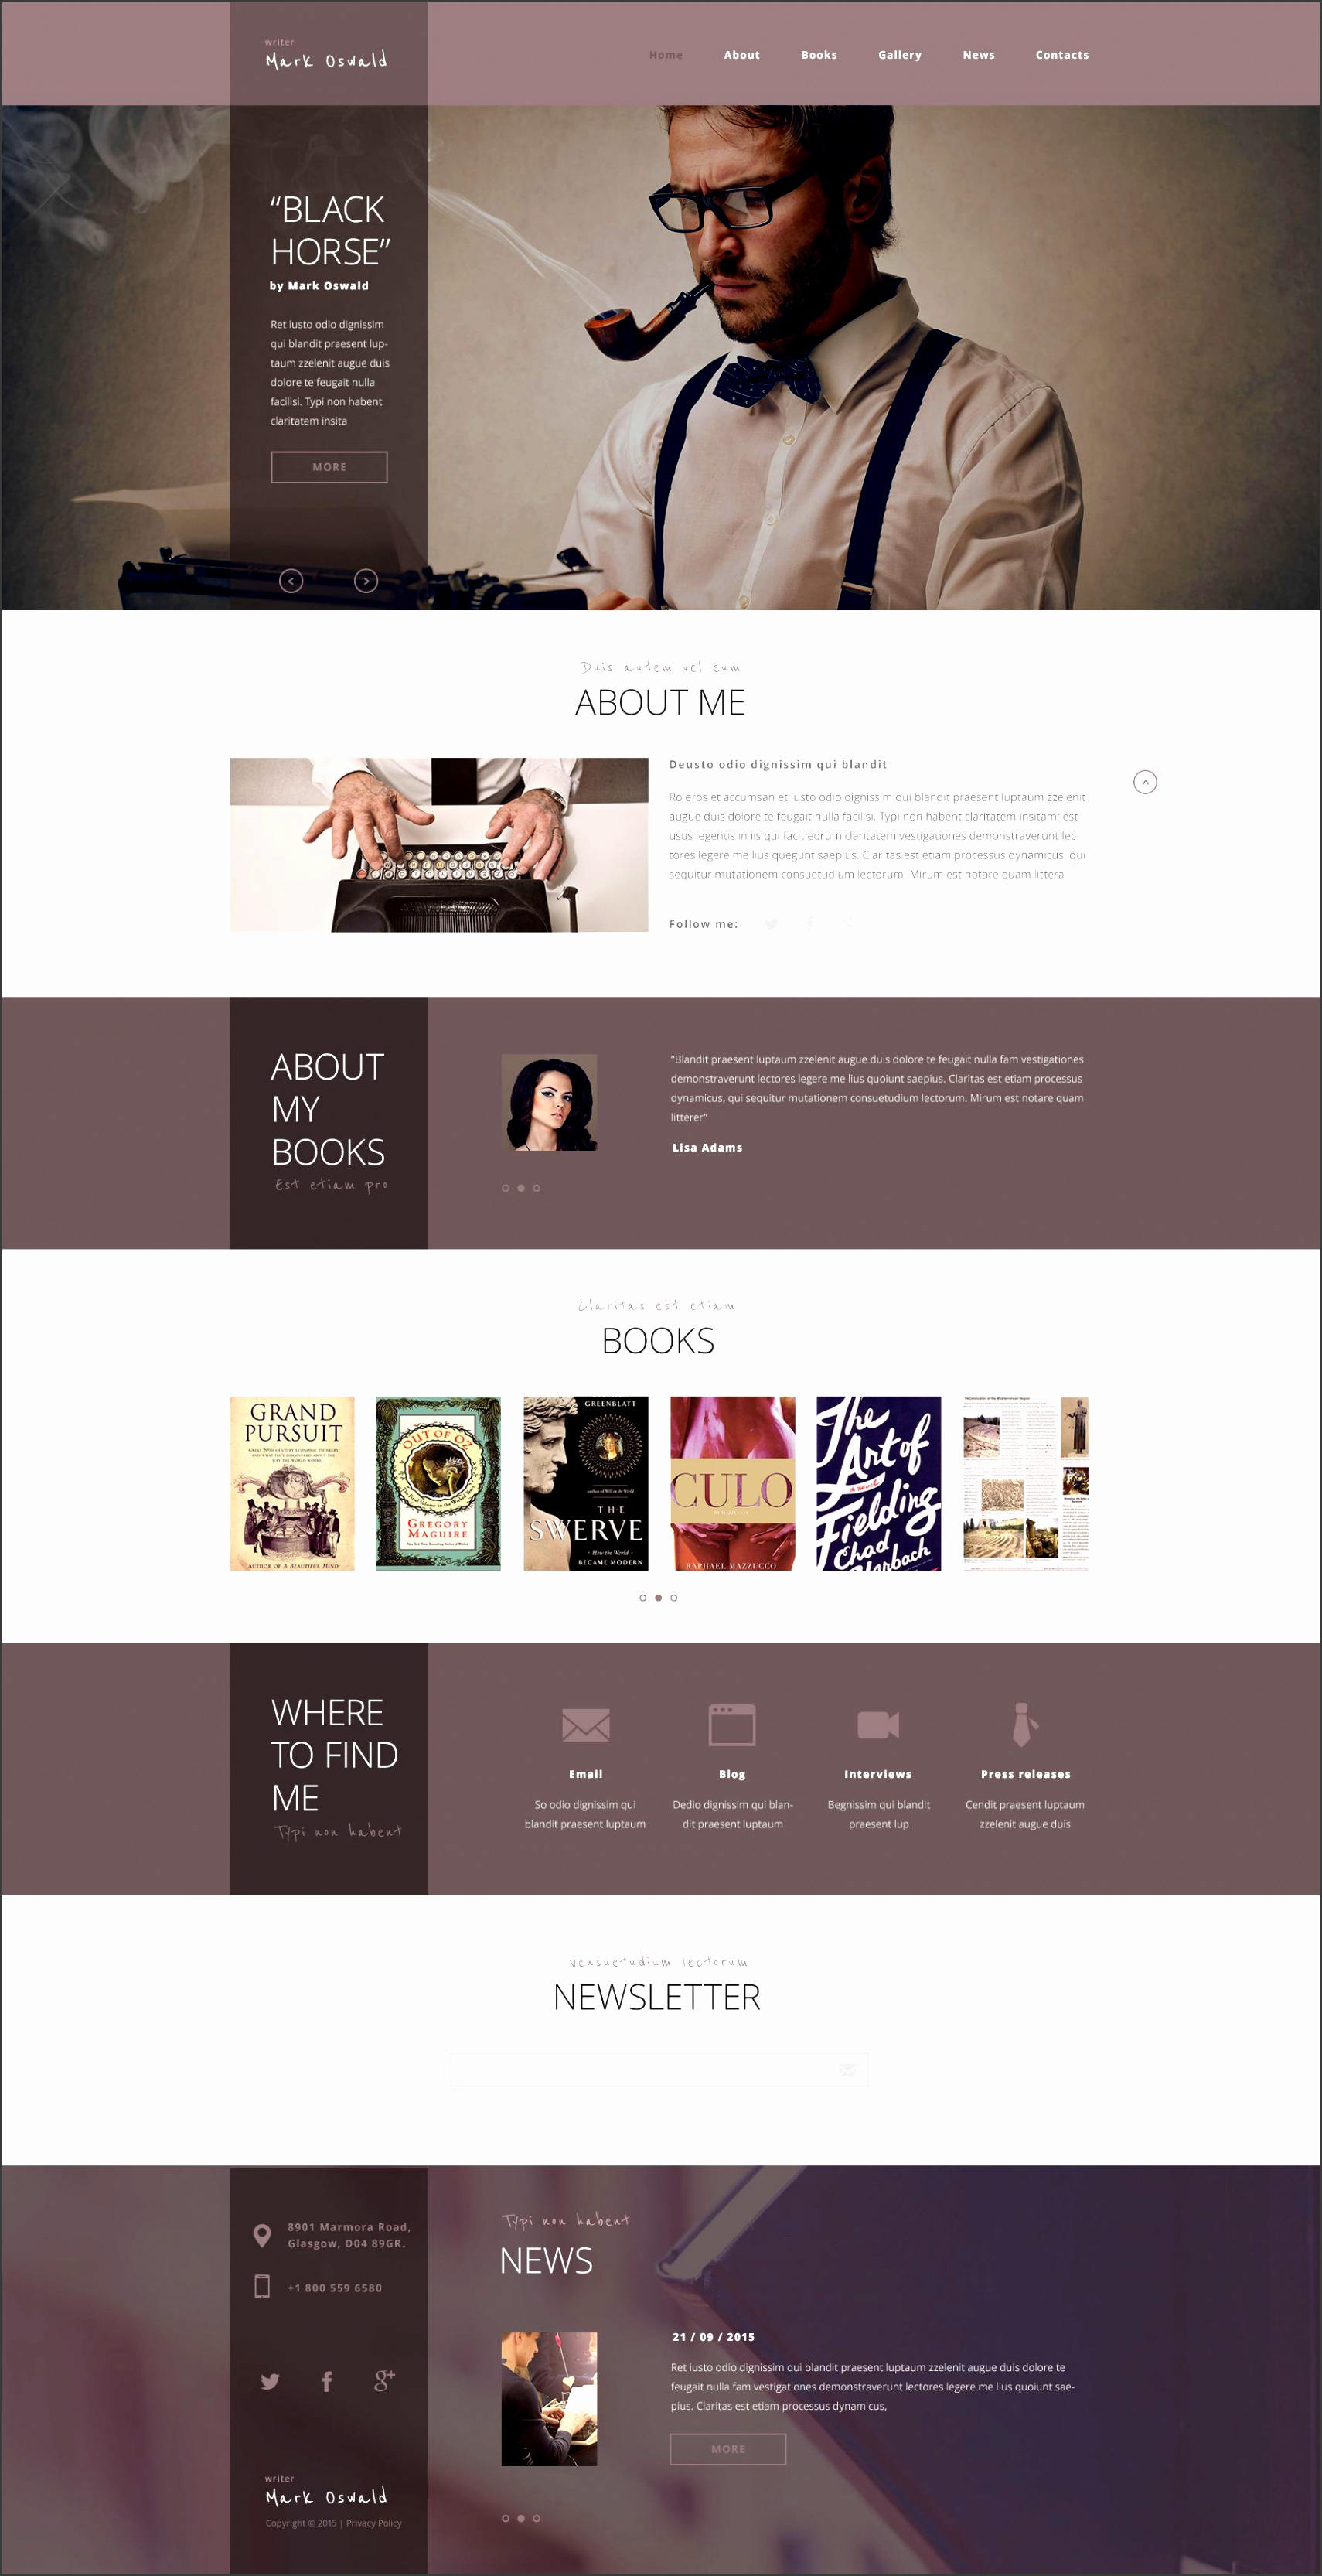 website design template writer personal page feather ink books experience inspiration creative ideas biography